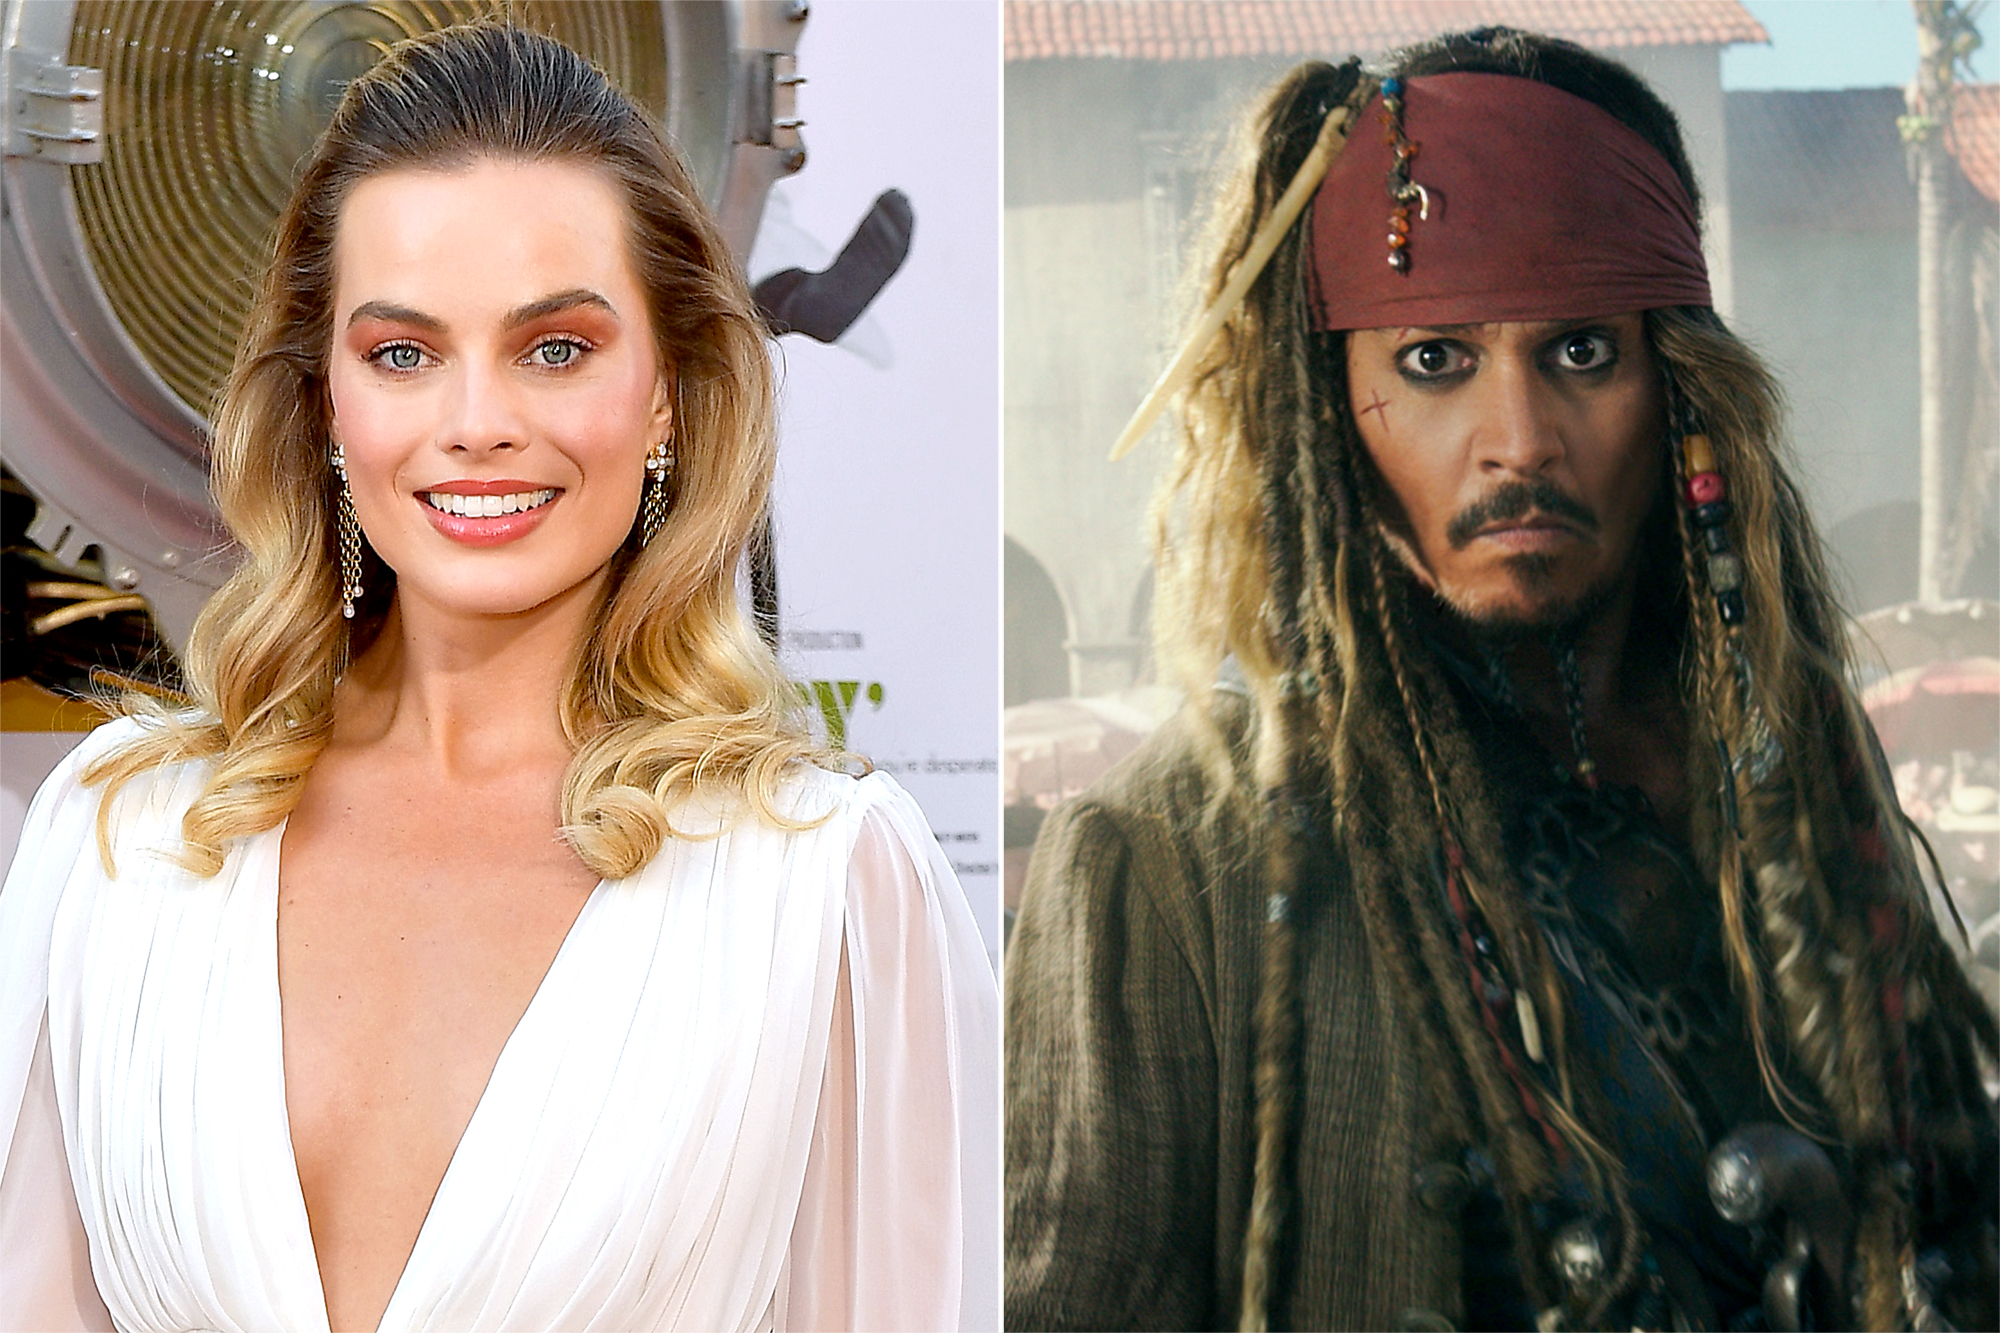 Margot Robbie, PIRATES OF THE CARIBBEAN: DEAD MEN TELL NO TALES